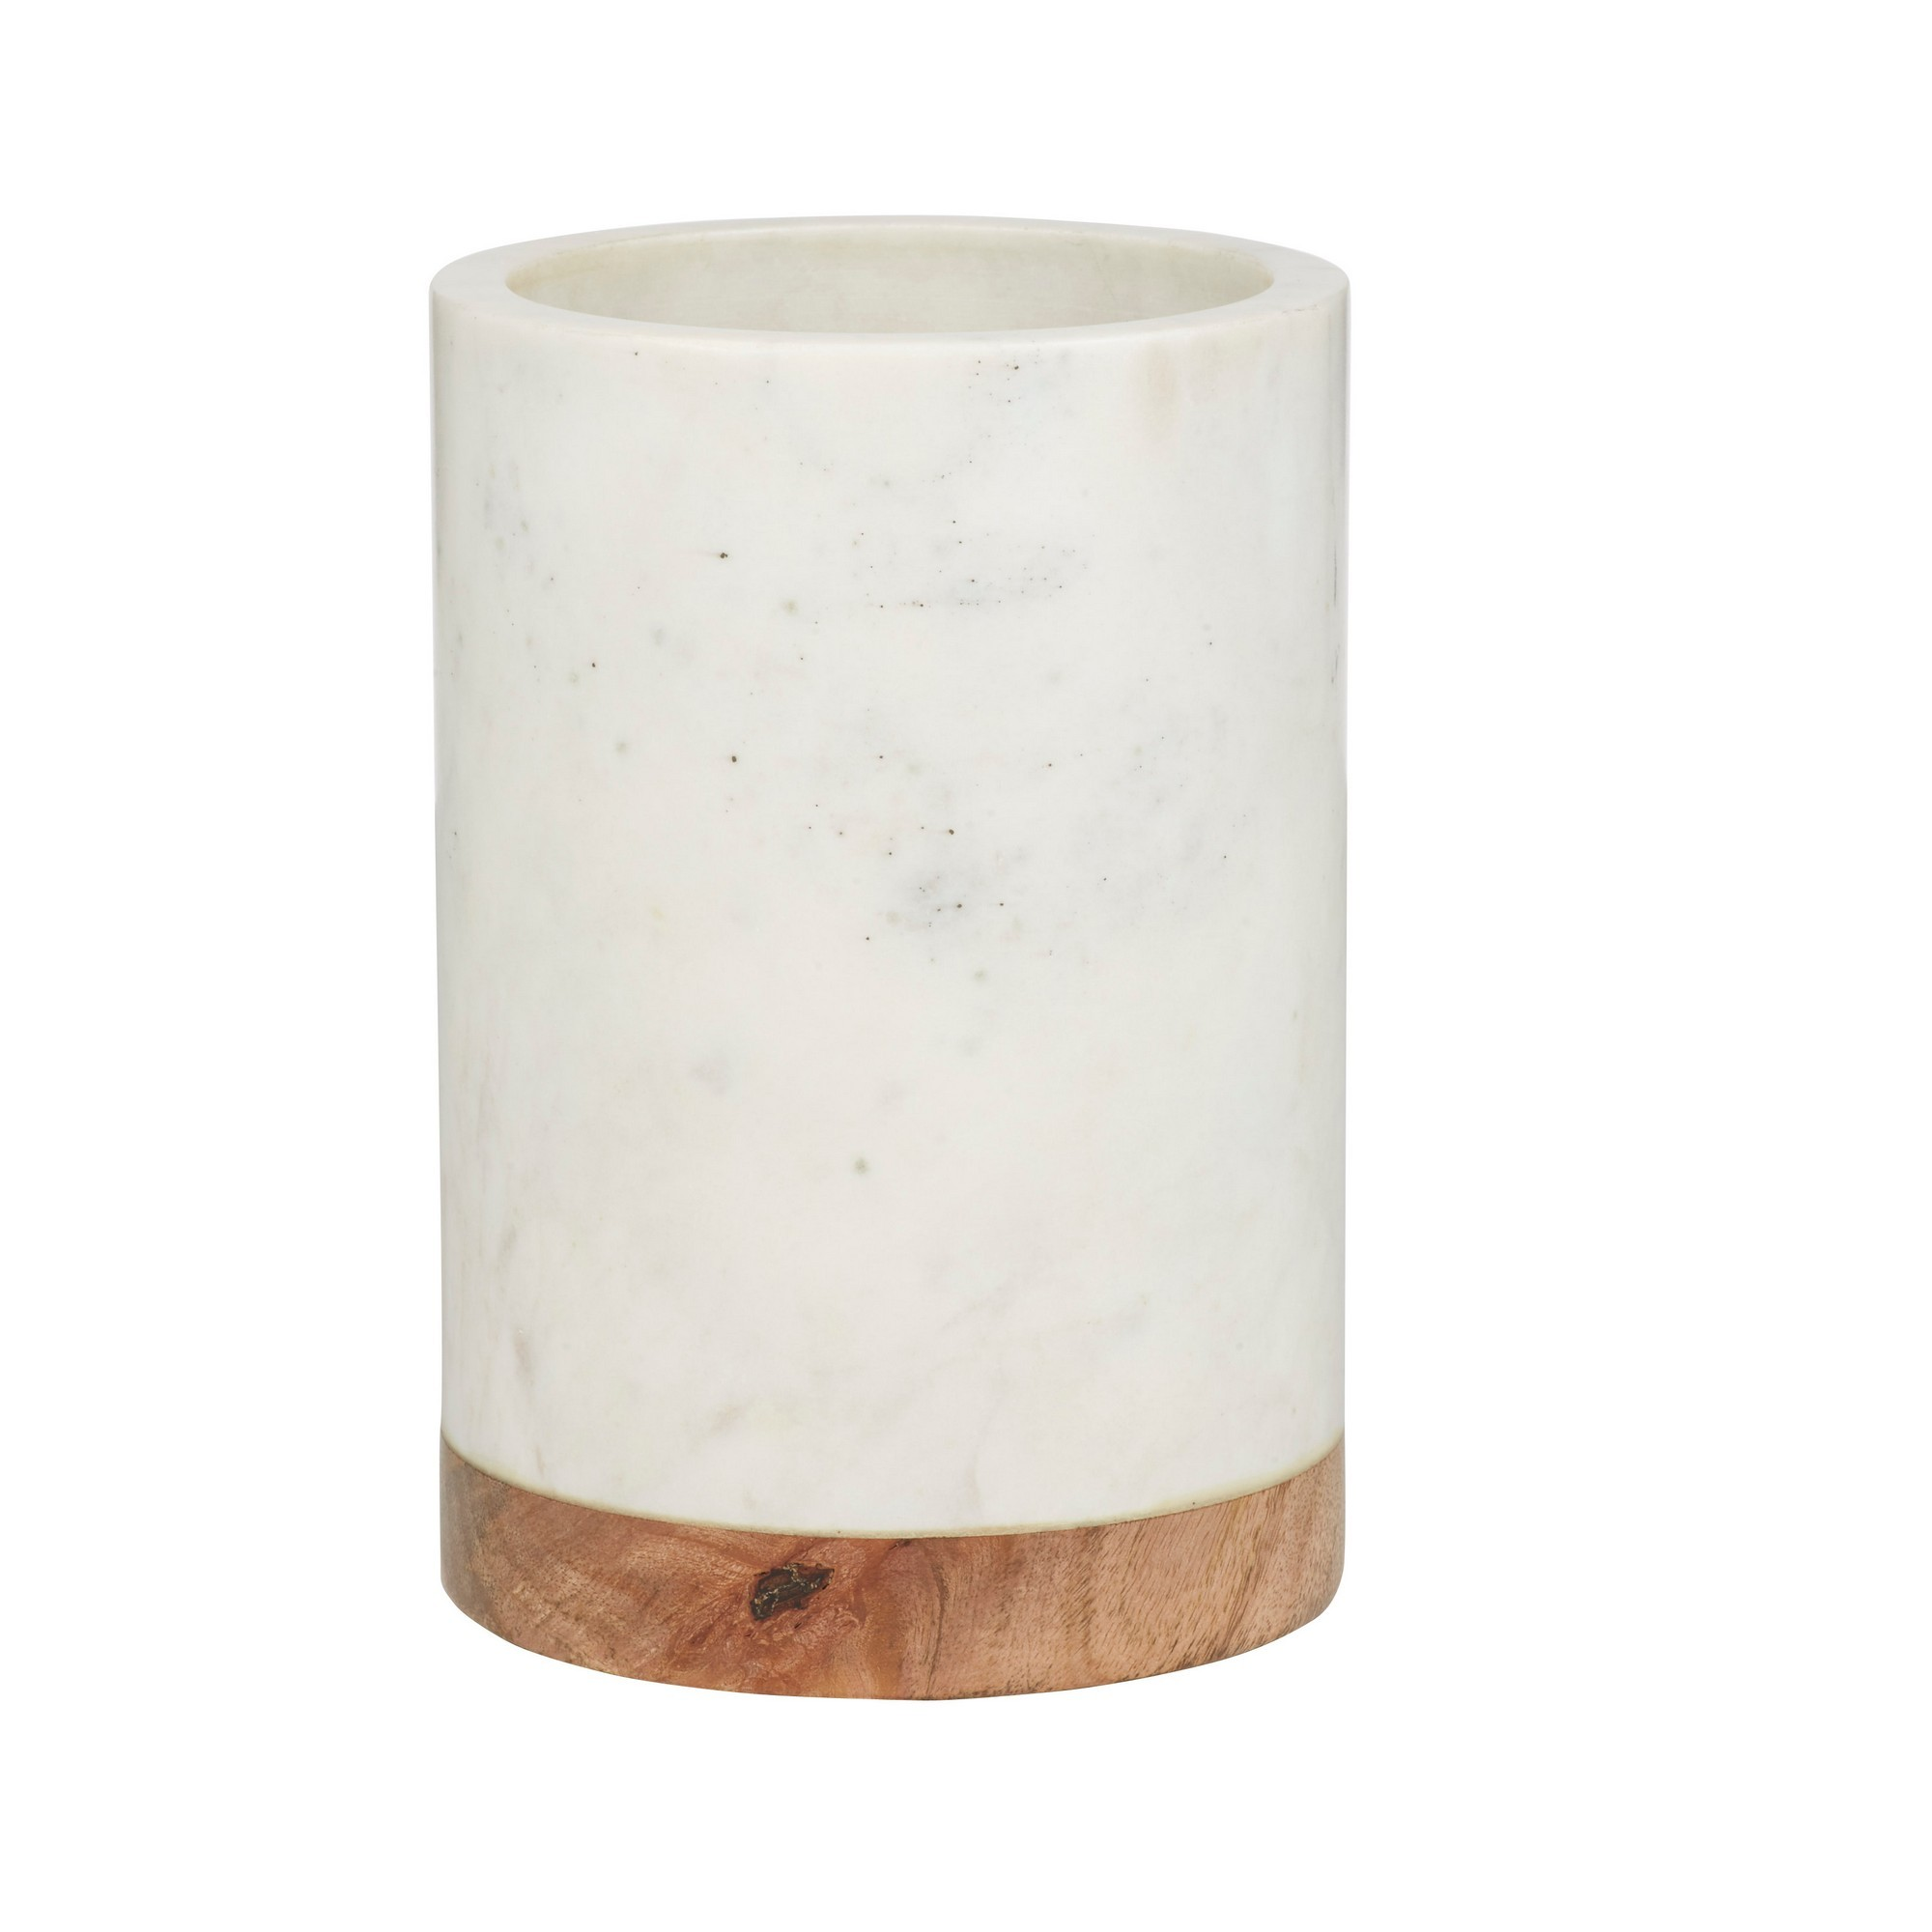 Eliot Marble & Mango Wood Utensil Holder